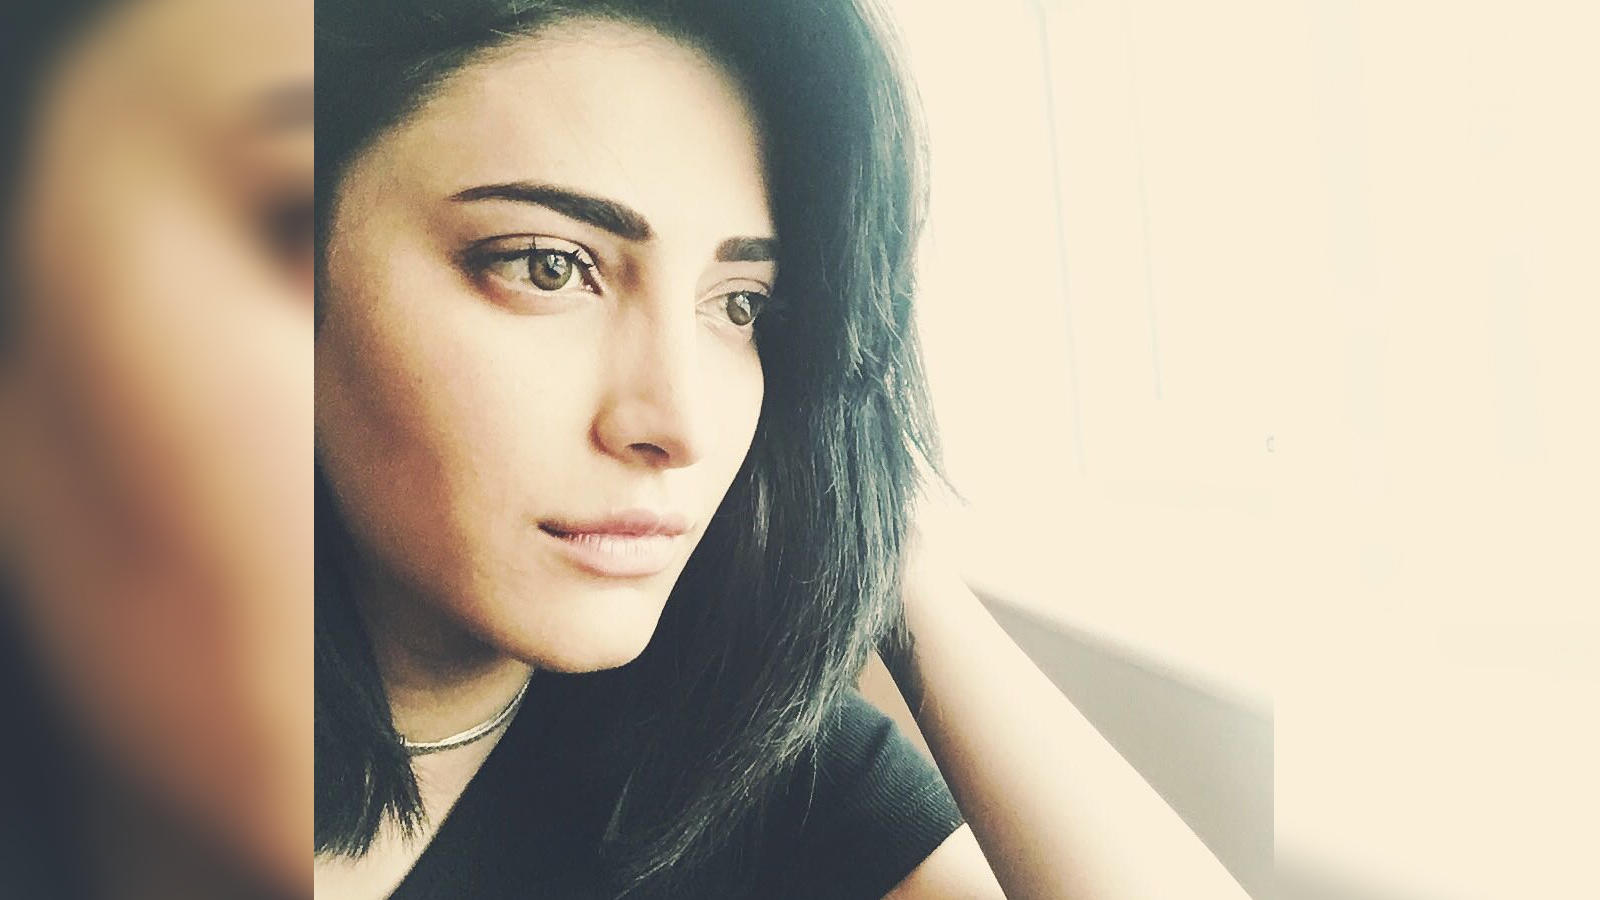 shruti-haasan-opens-up-on-alcohol-addiction-and-breakup